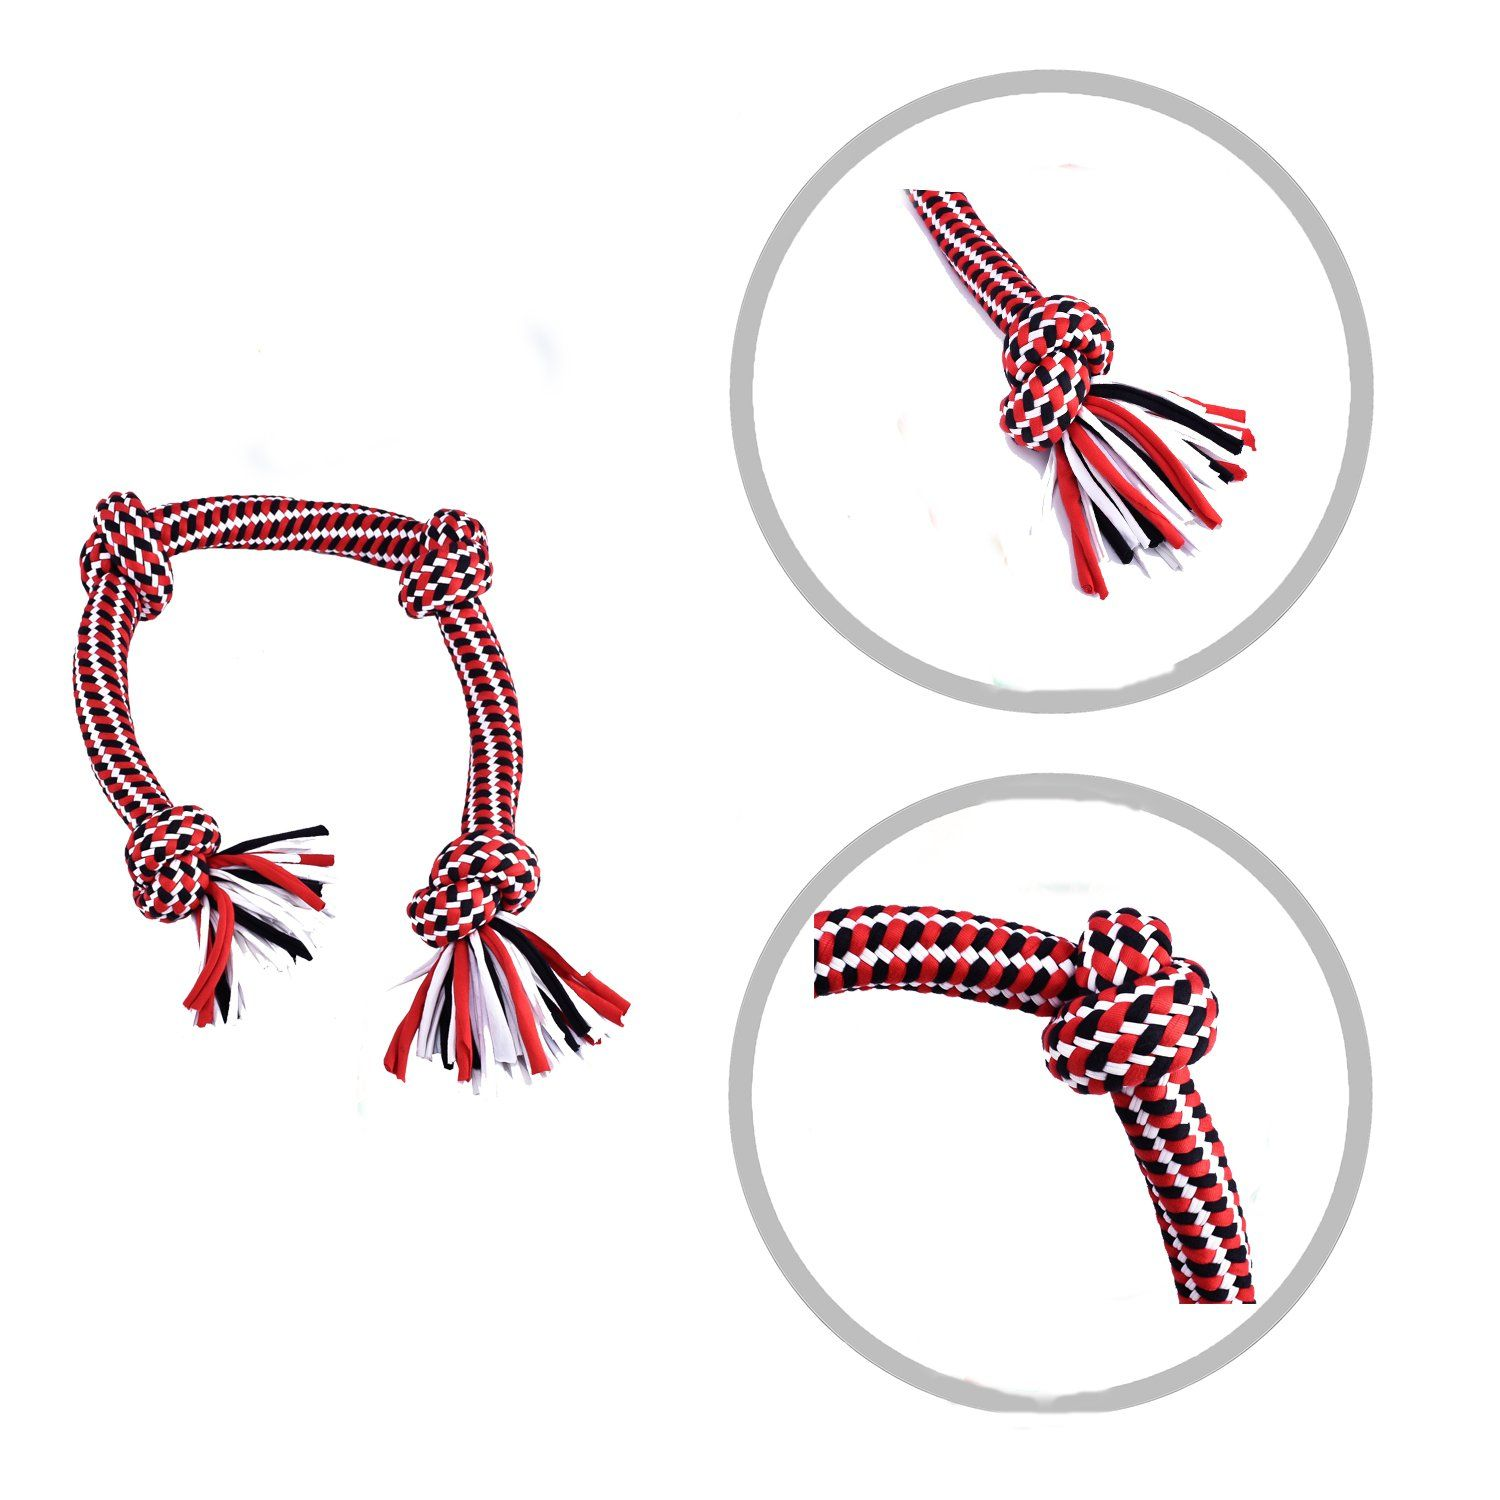 Jixiuzhen Large Dog Rope Toys Dog Chew Toys Tshirt Cloth Rope Dog